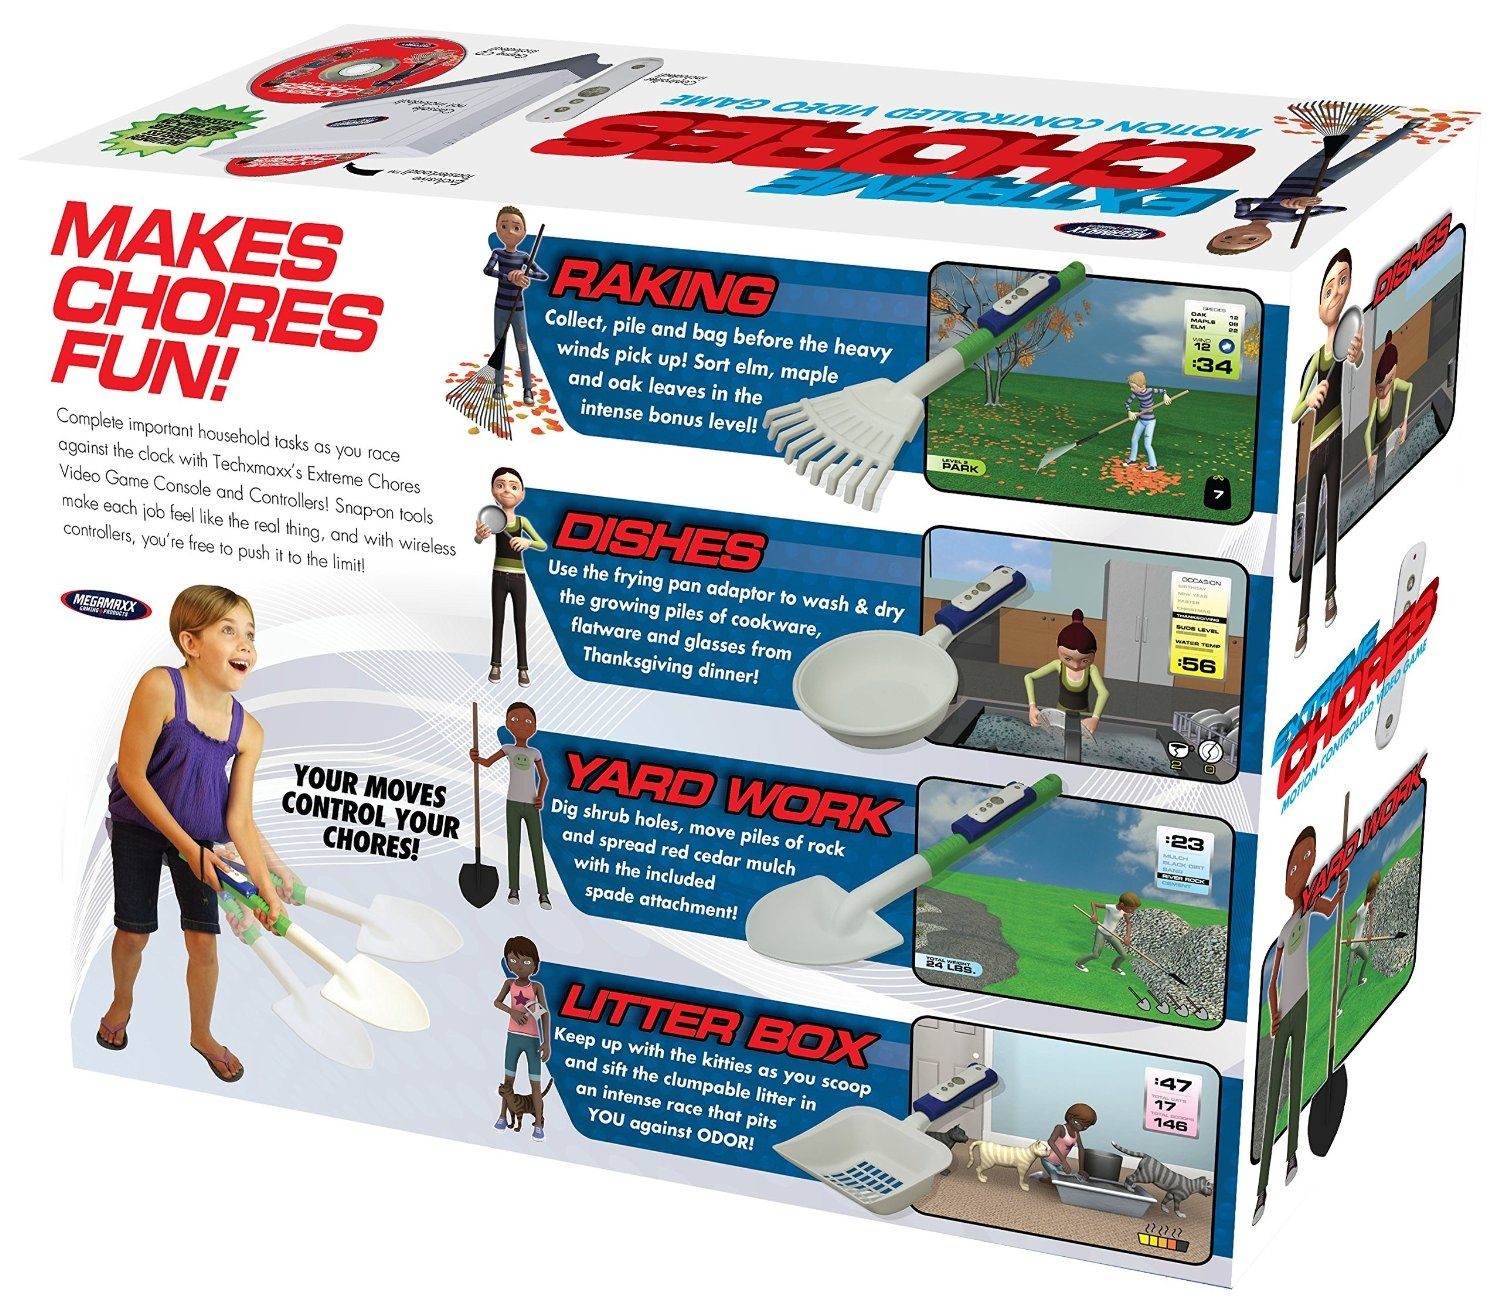 Extreme Chores Prank Video Game Gift Box